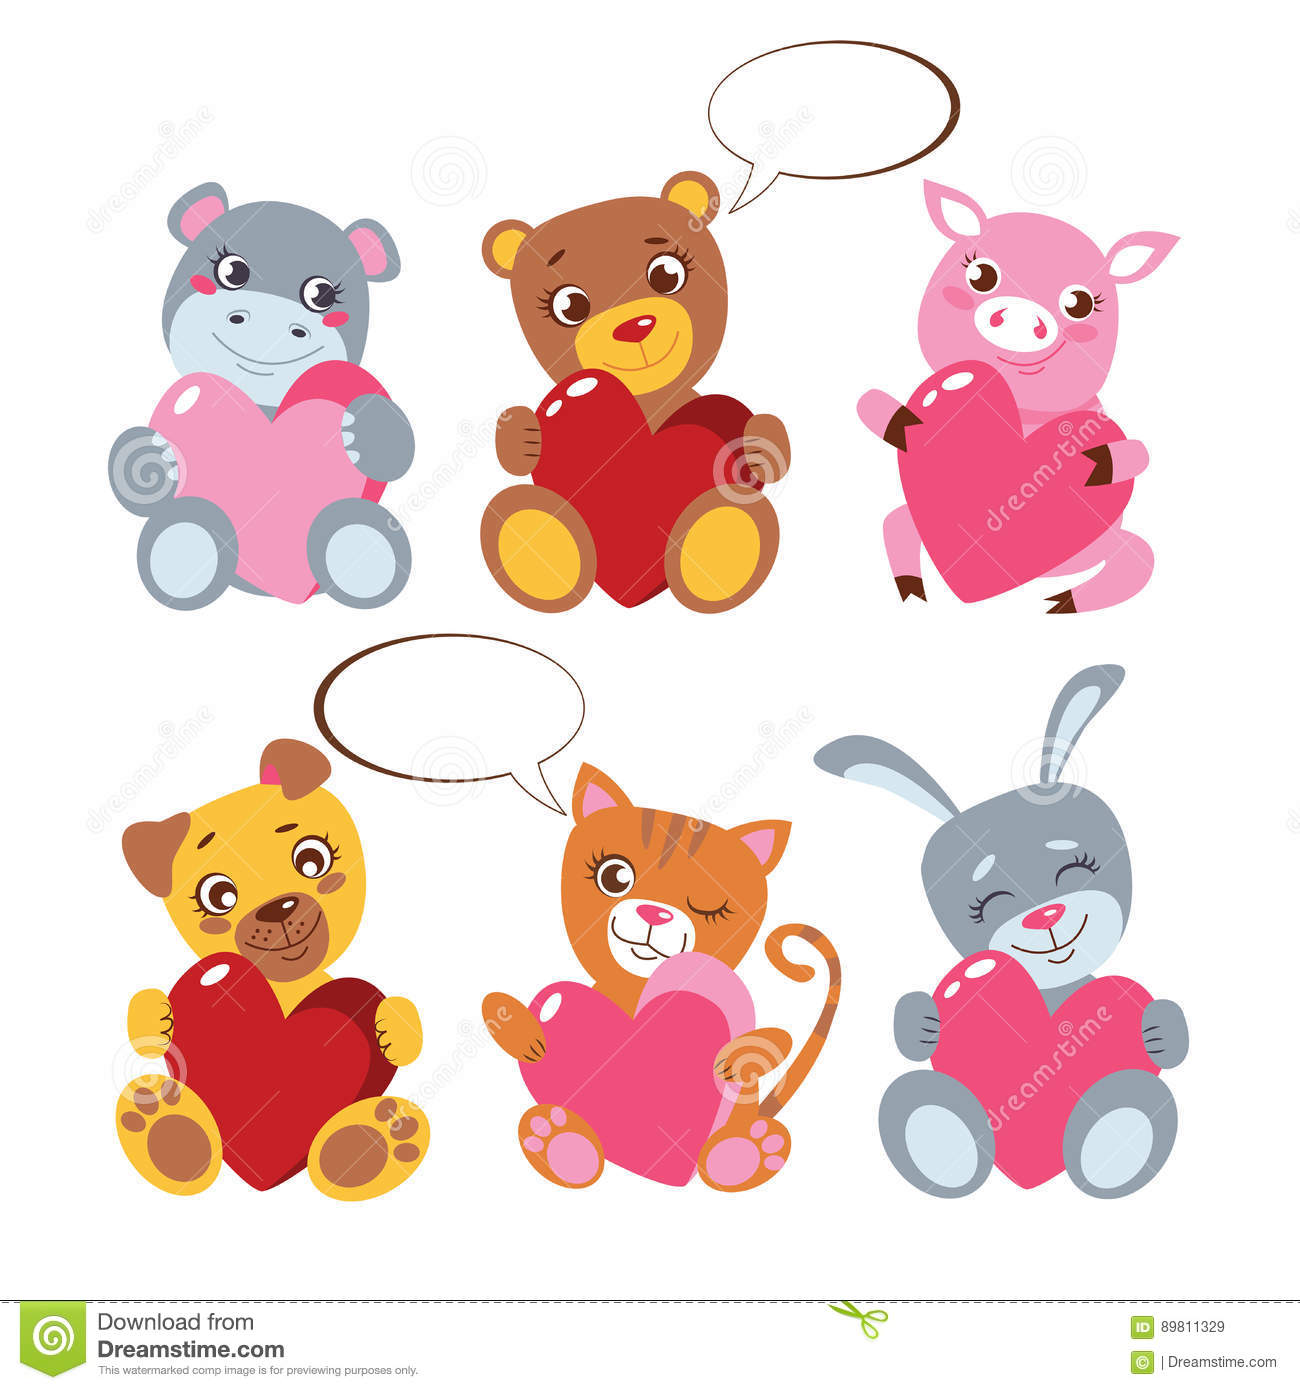 Catnip Toys For Valentine S Day : Cute animals with heard collection on white toy presents